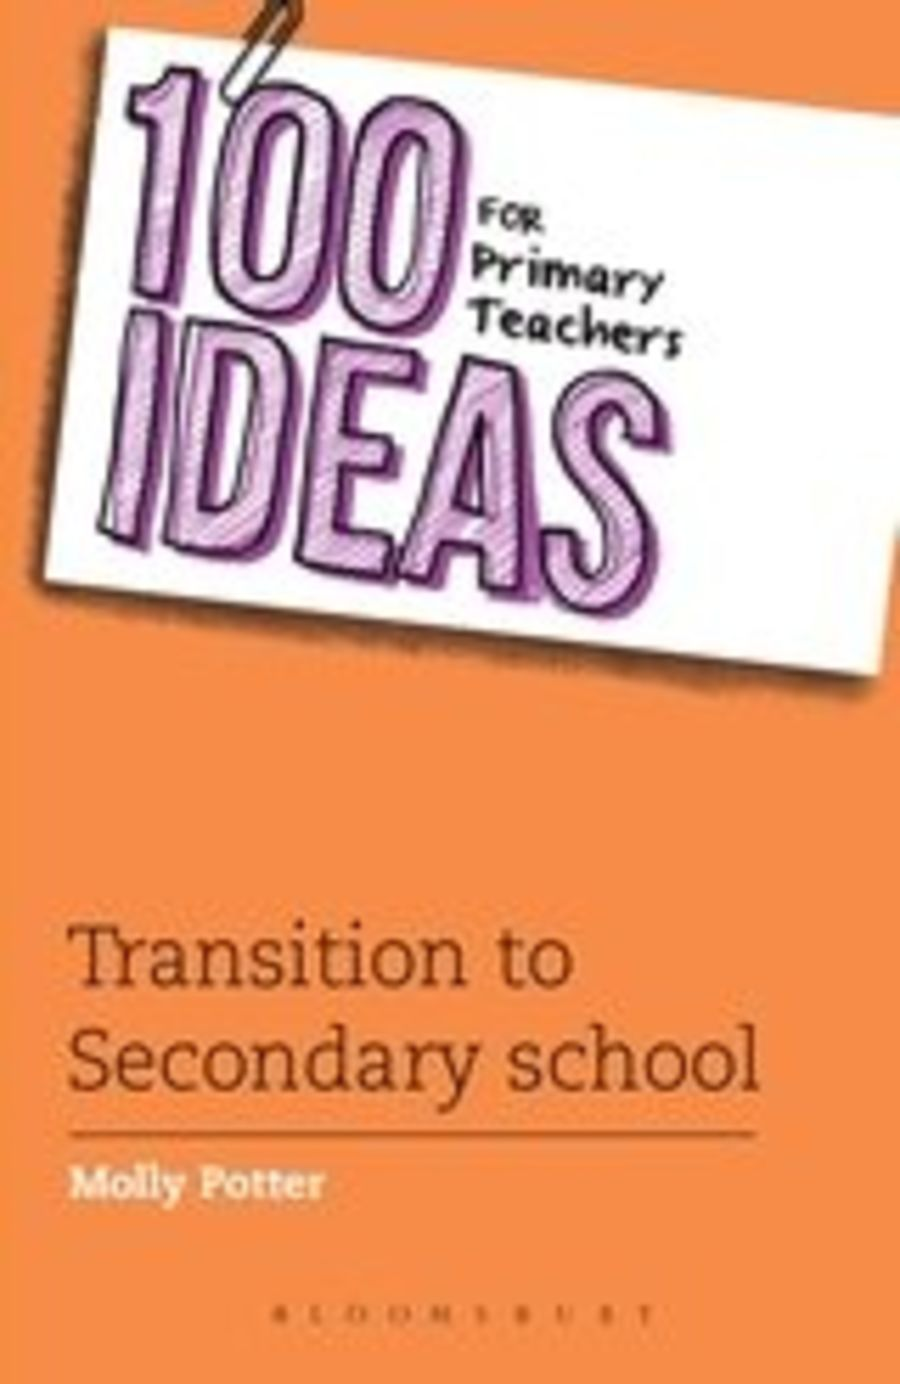 100 Ideas for Primary Teachers on Transition to Secondary School